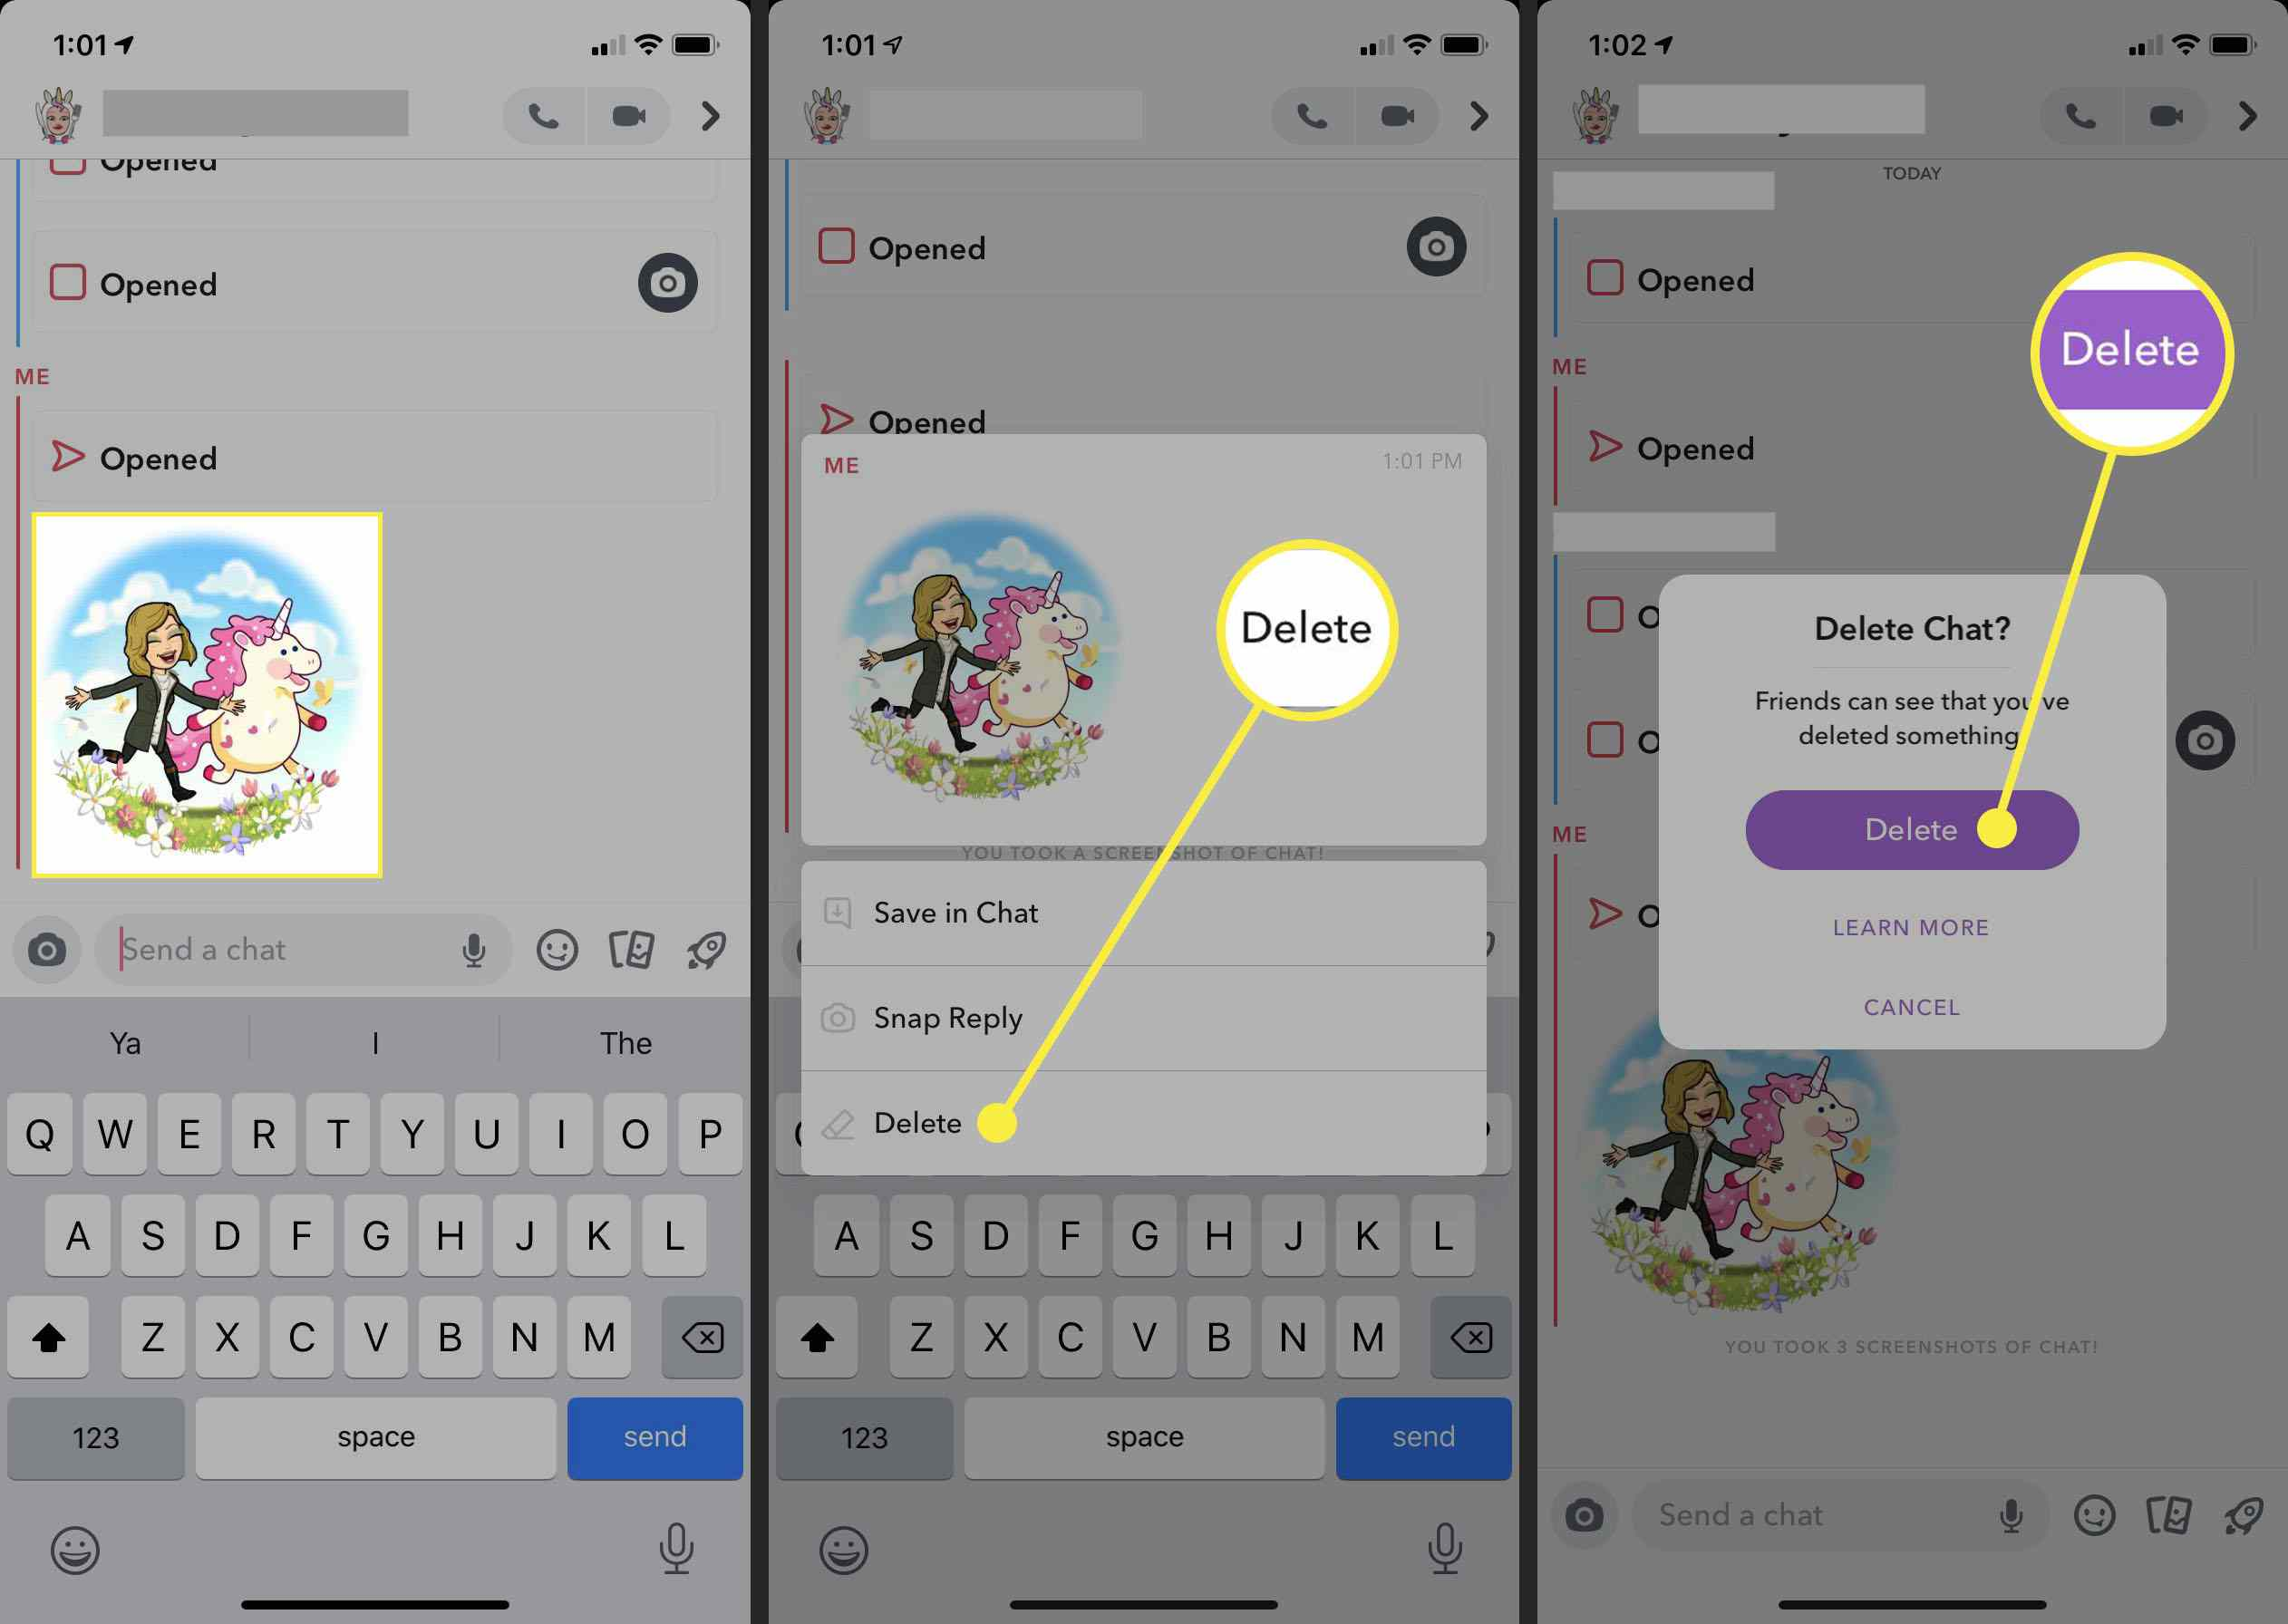 Steps to take to delete a message in Snapchat.